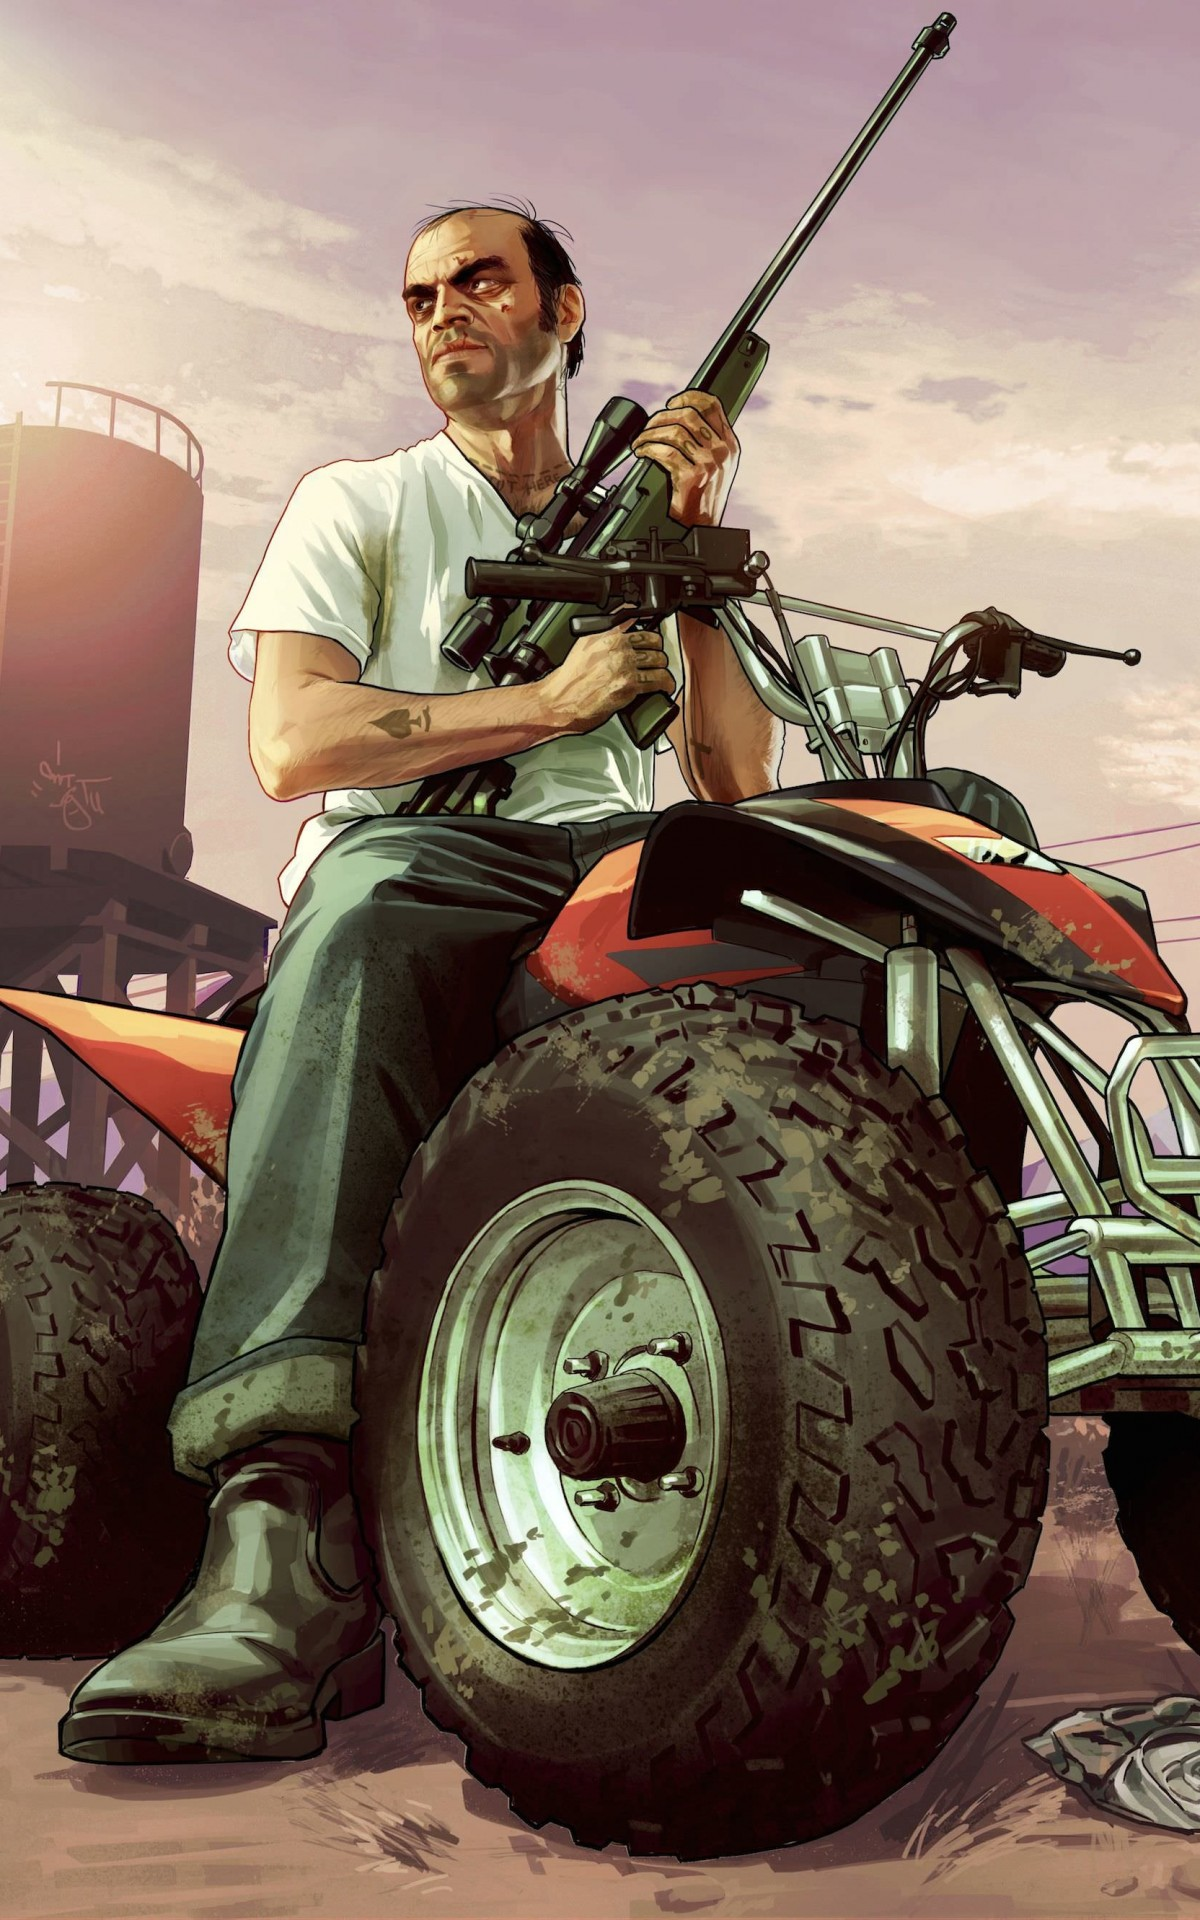 GTA 5 : Trevor Philips Wallpaper for Amazon Kindle Fire HDX